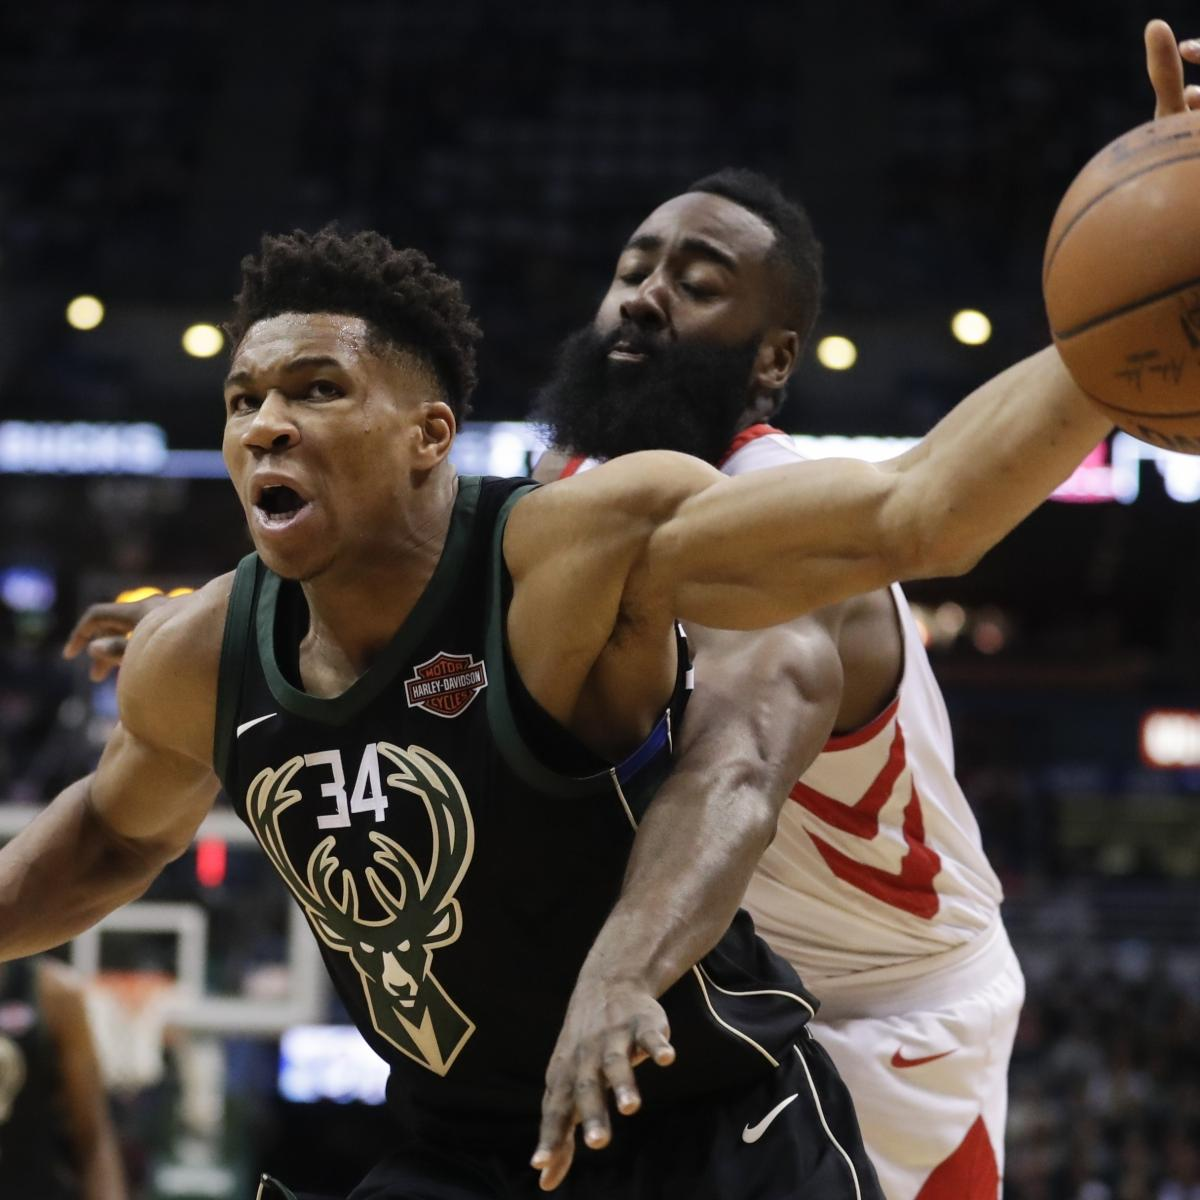 Nba2k19 James Harden: NBA MVP 2019 Odds: Giannis Heavy Betting Favorite Over